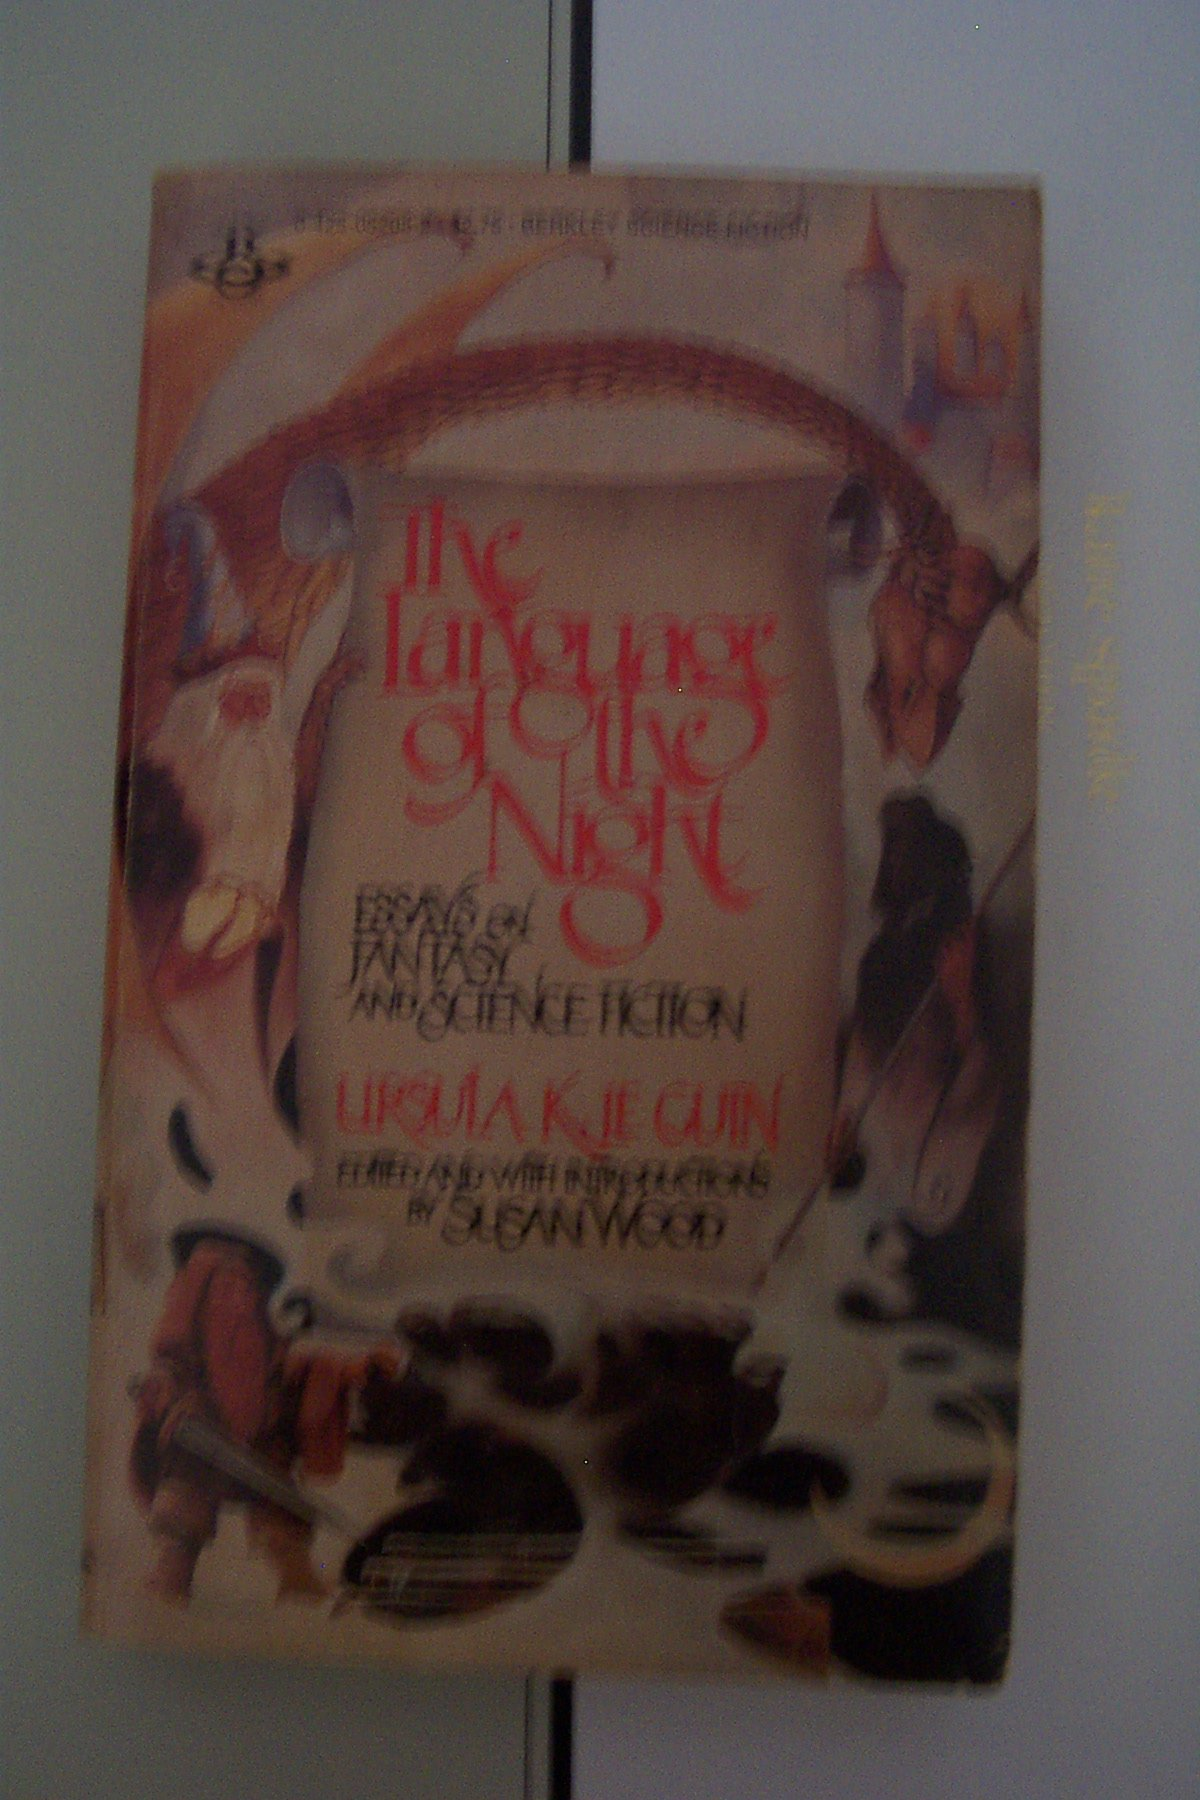 com the language of the night essays on fantasy and com the language of the night essays on fantasy and science fiction 9780060924126 ursula k le guin books